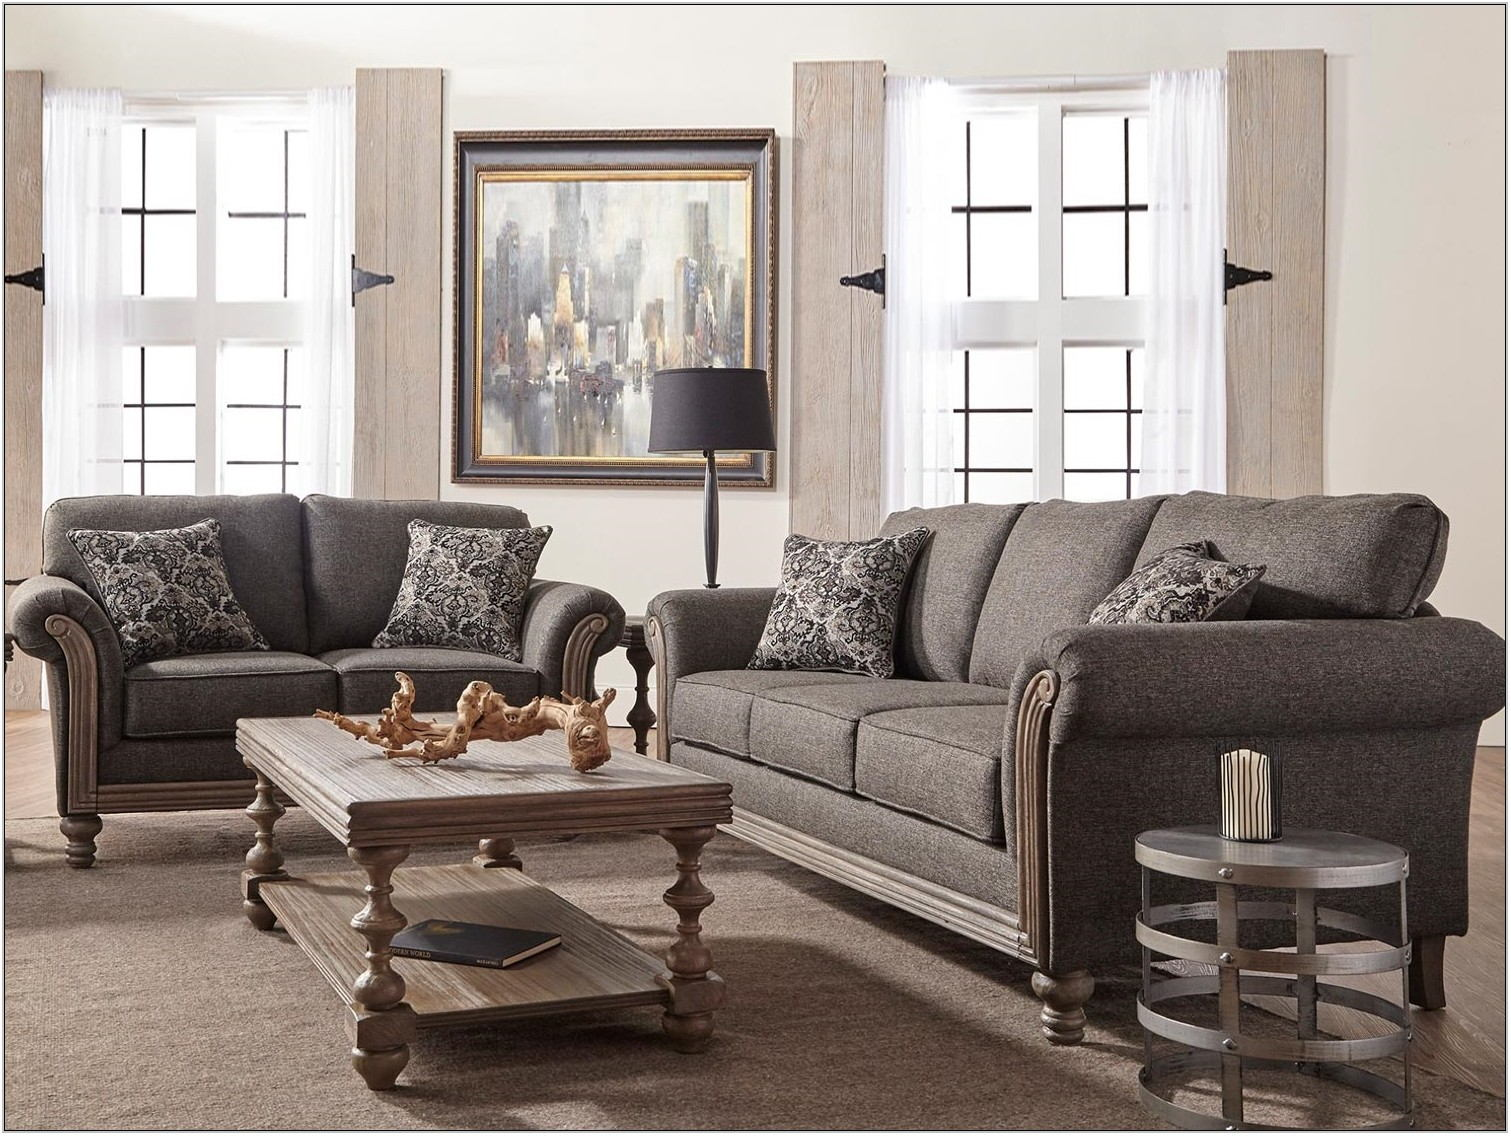 2 Piece Living Room Furniture Set